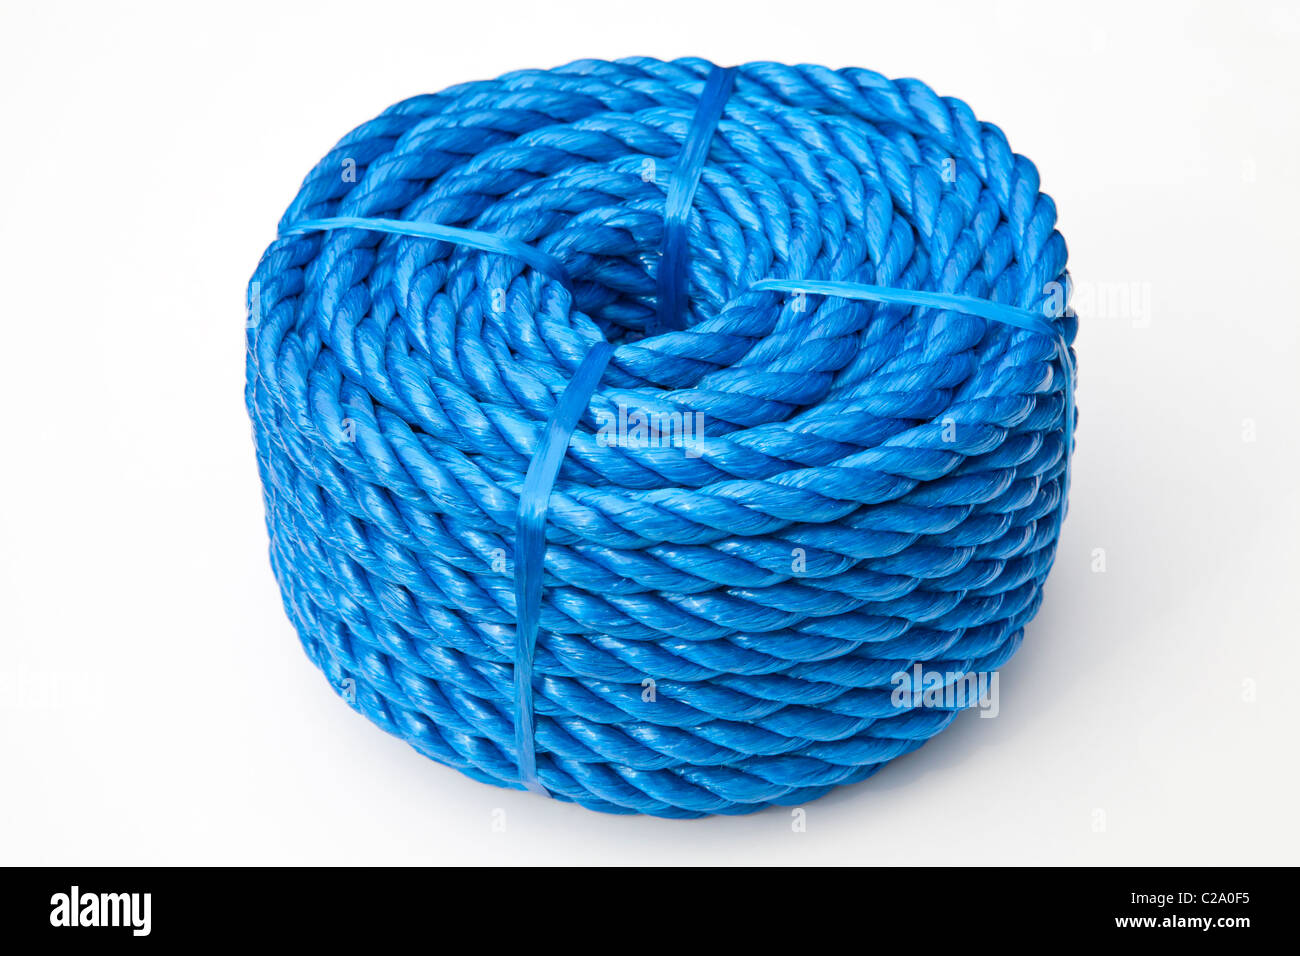 Coil of blue rope - Stock Image